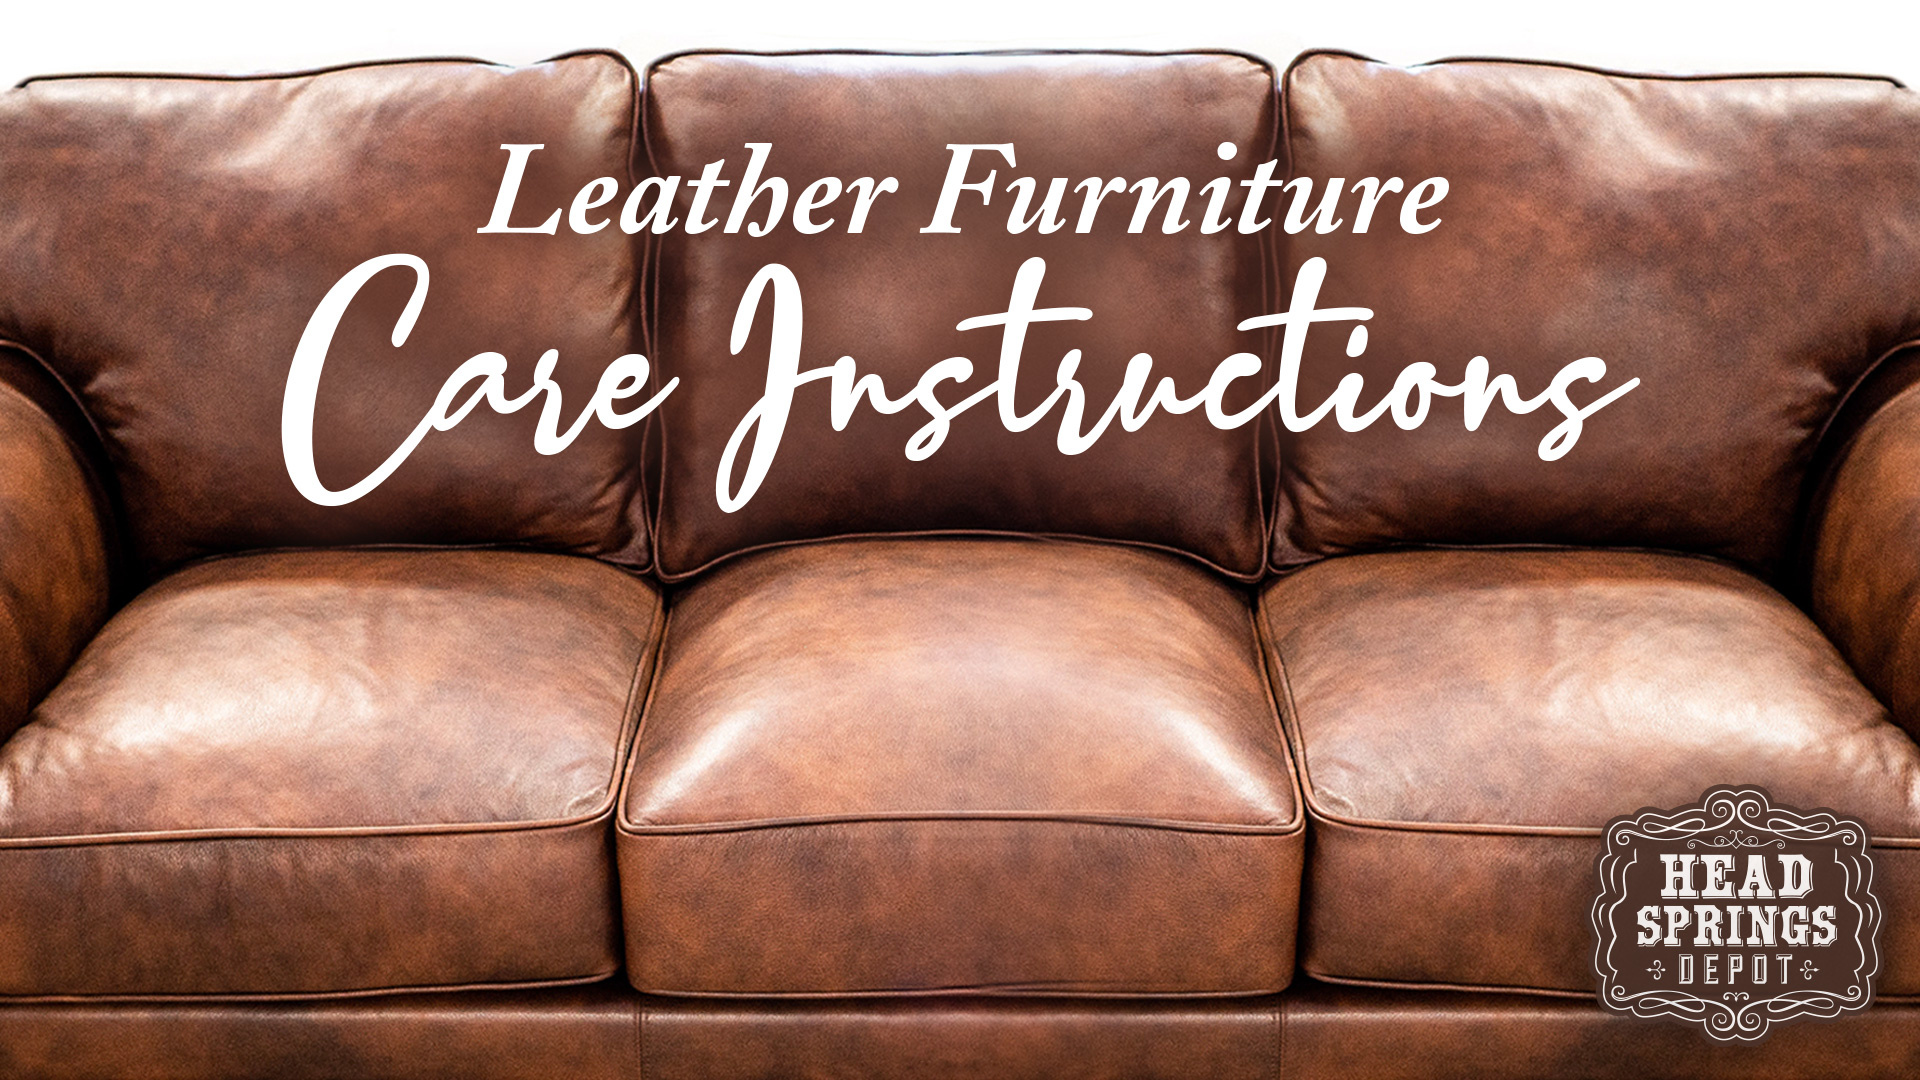 Leather Furniture Care : Things You Didn't Know You Didn't Know